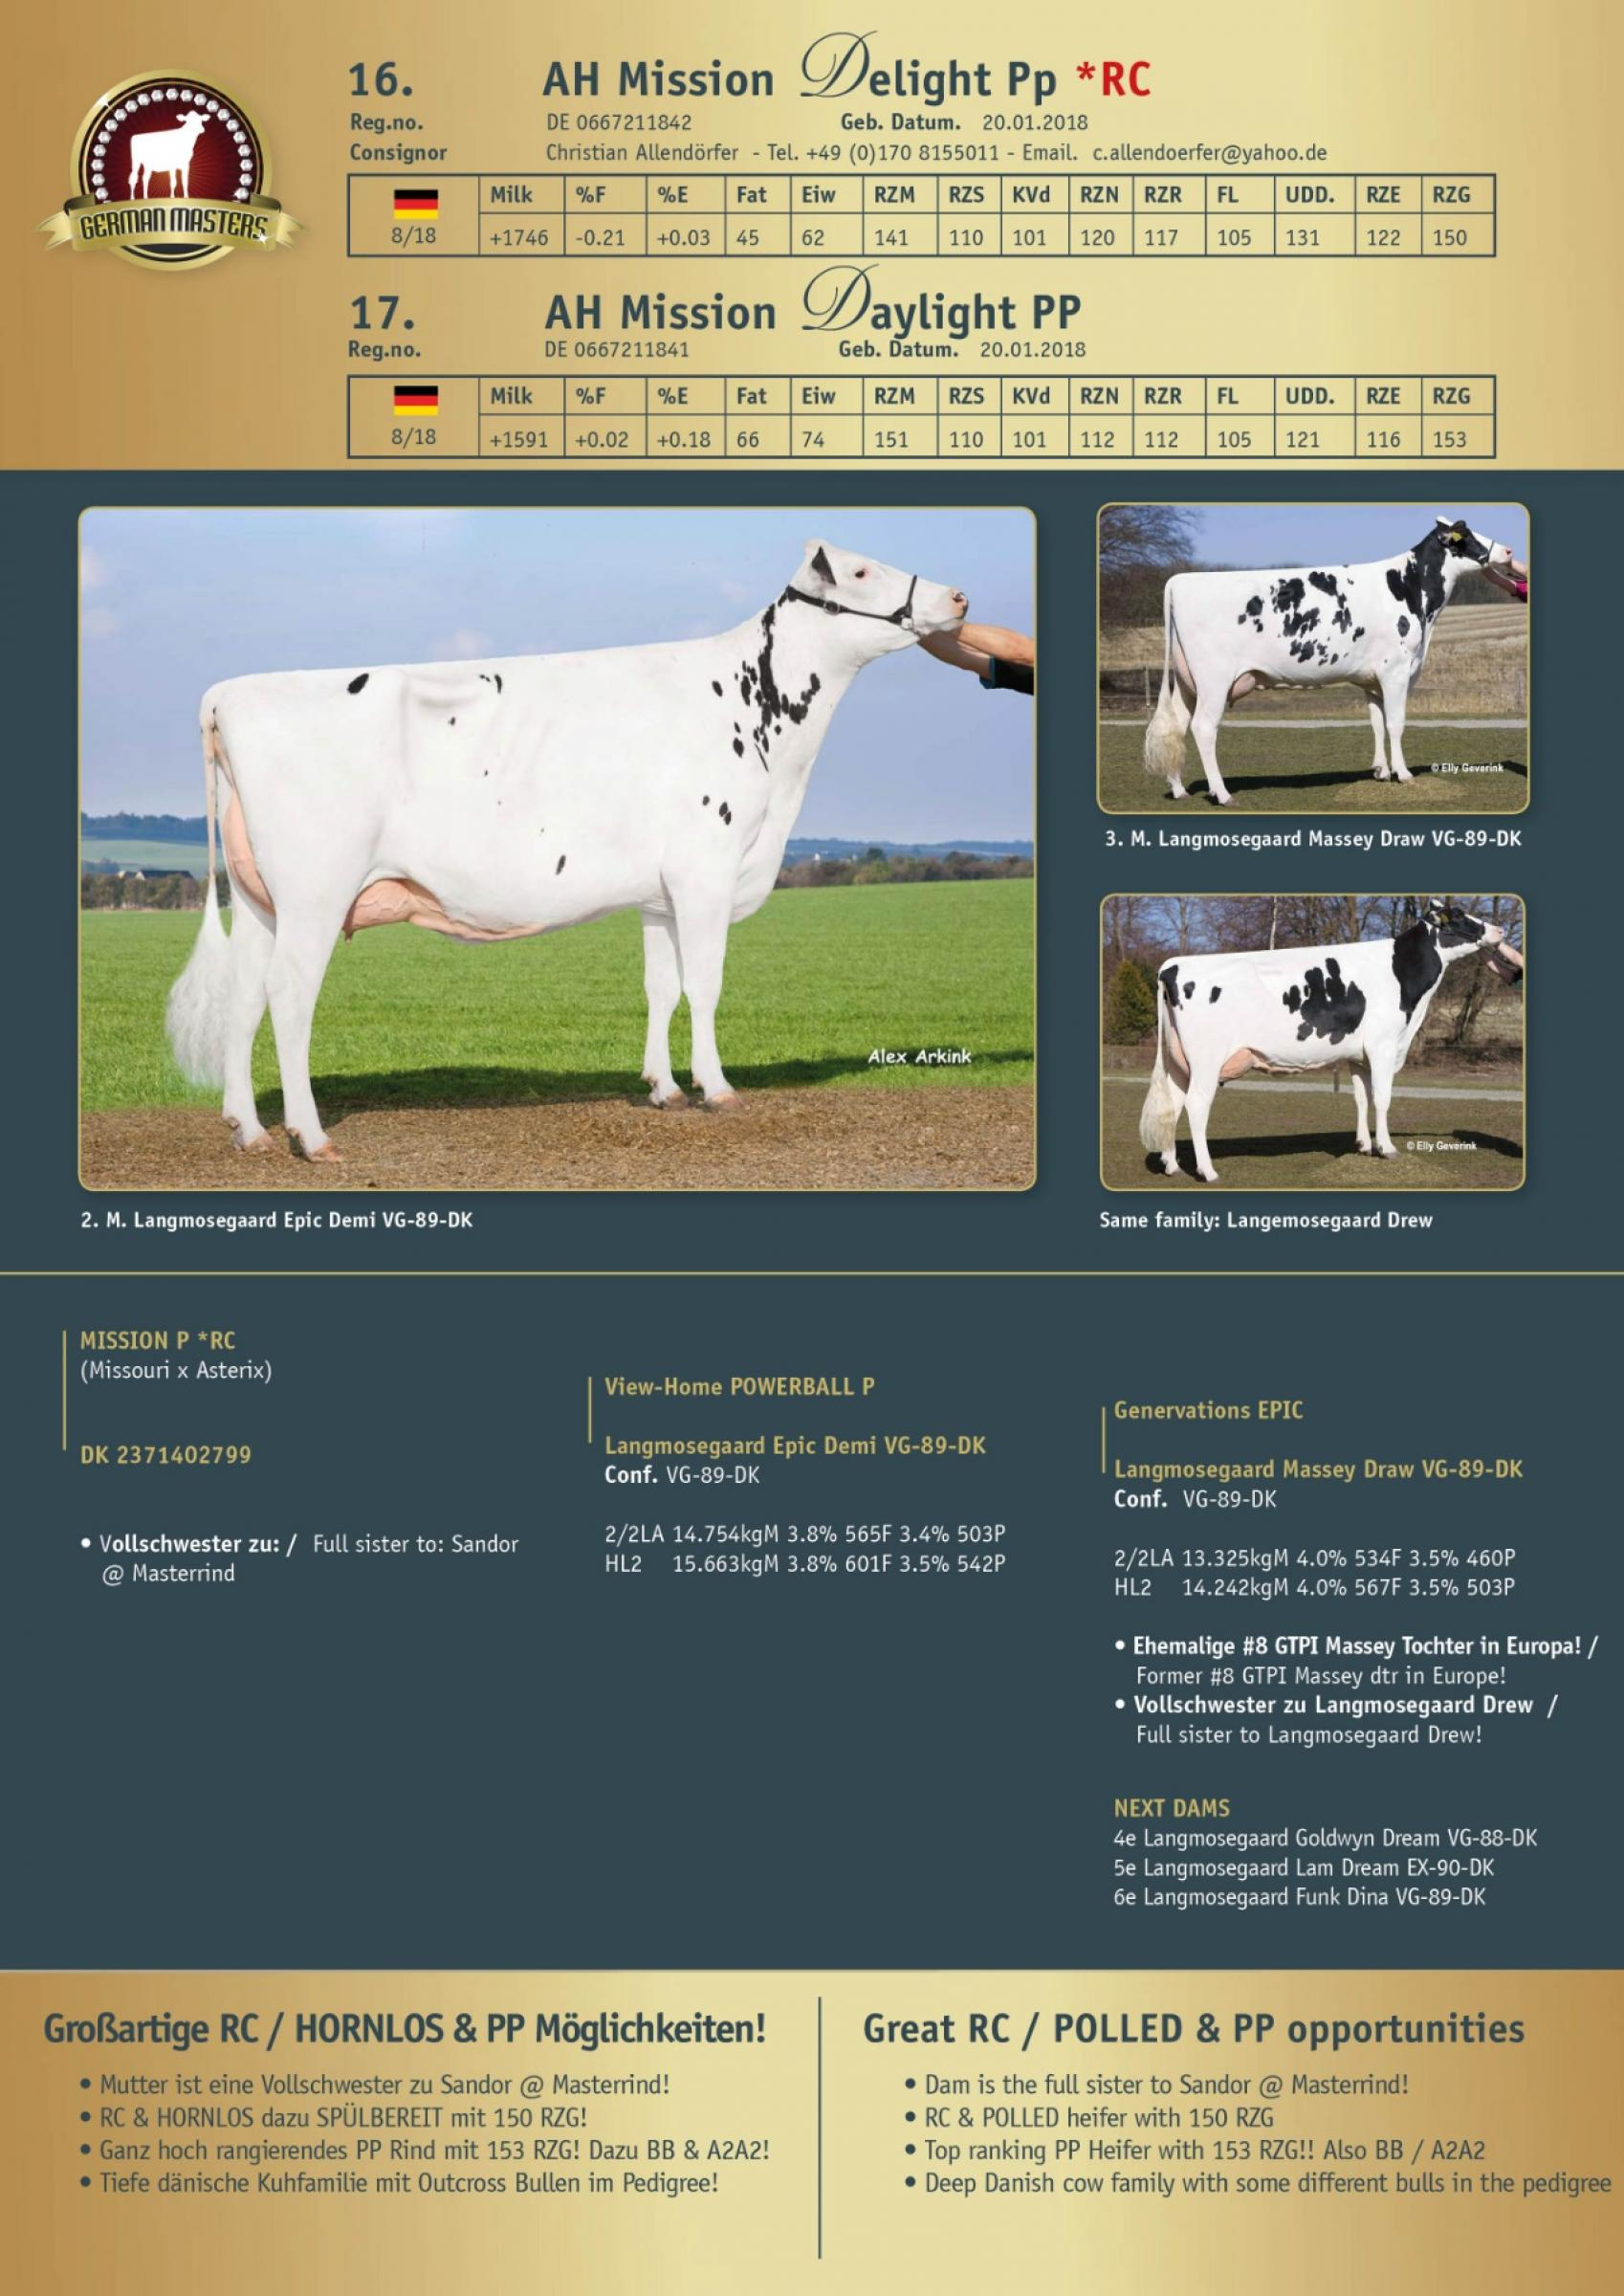 Datasheet for Lot 17. AH Mission Daylight PP